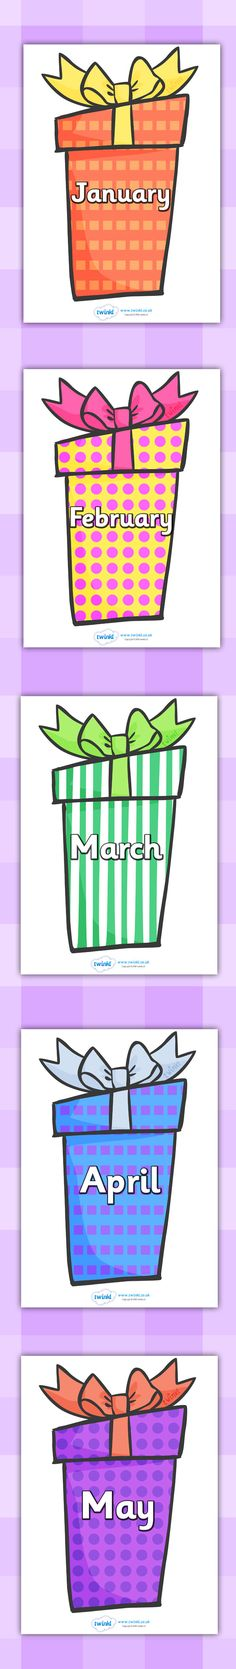 Twinkl Resources >> Months of the Year on Birthday Presents >> Printable resources for Primary, EYFS, KS1 and SEN. Thousands of classroom displays and teaching aids! Classroom Signs, Months, Birthdays